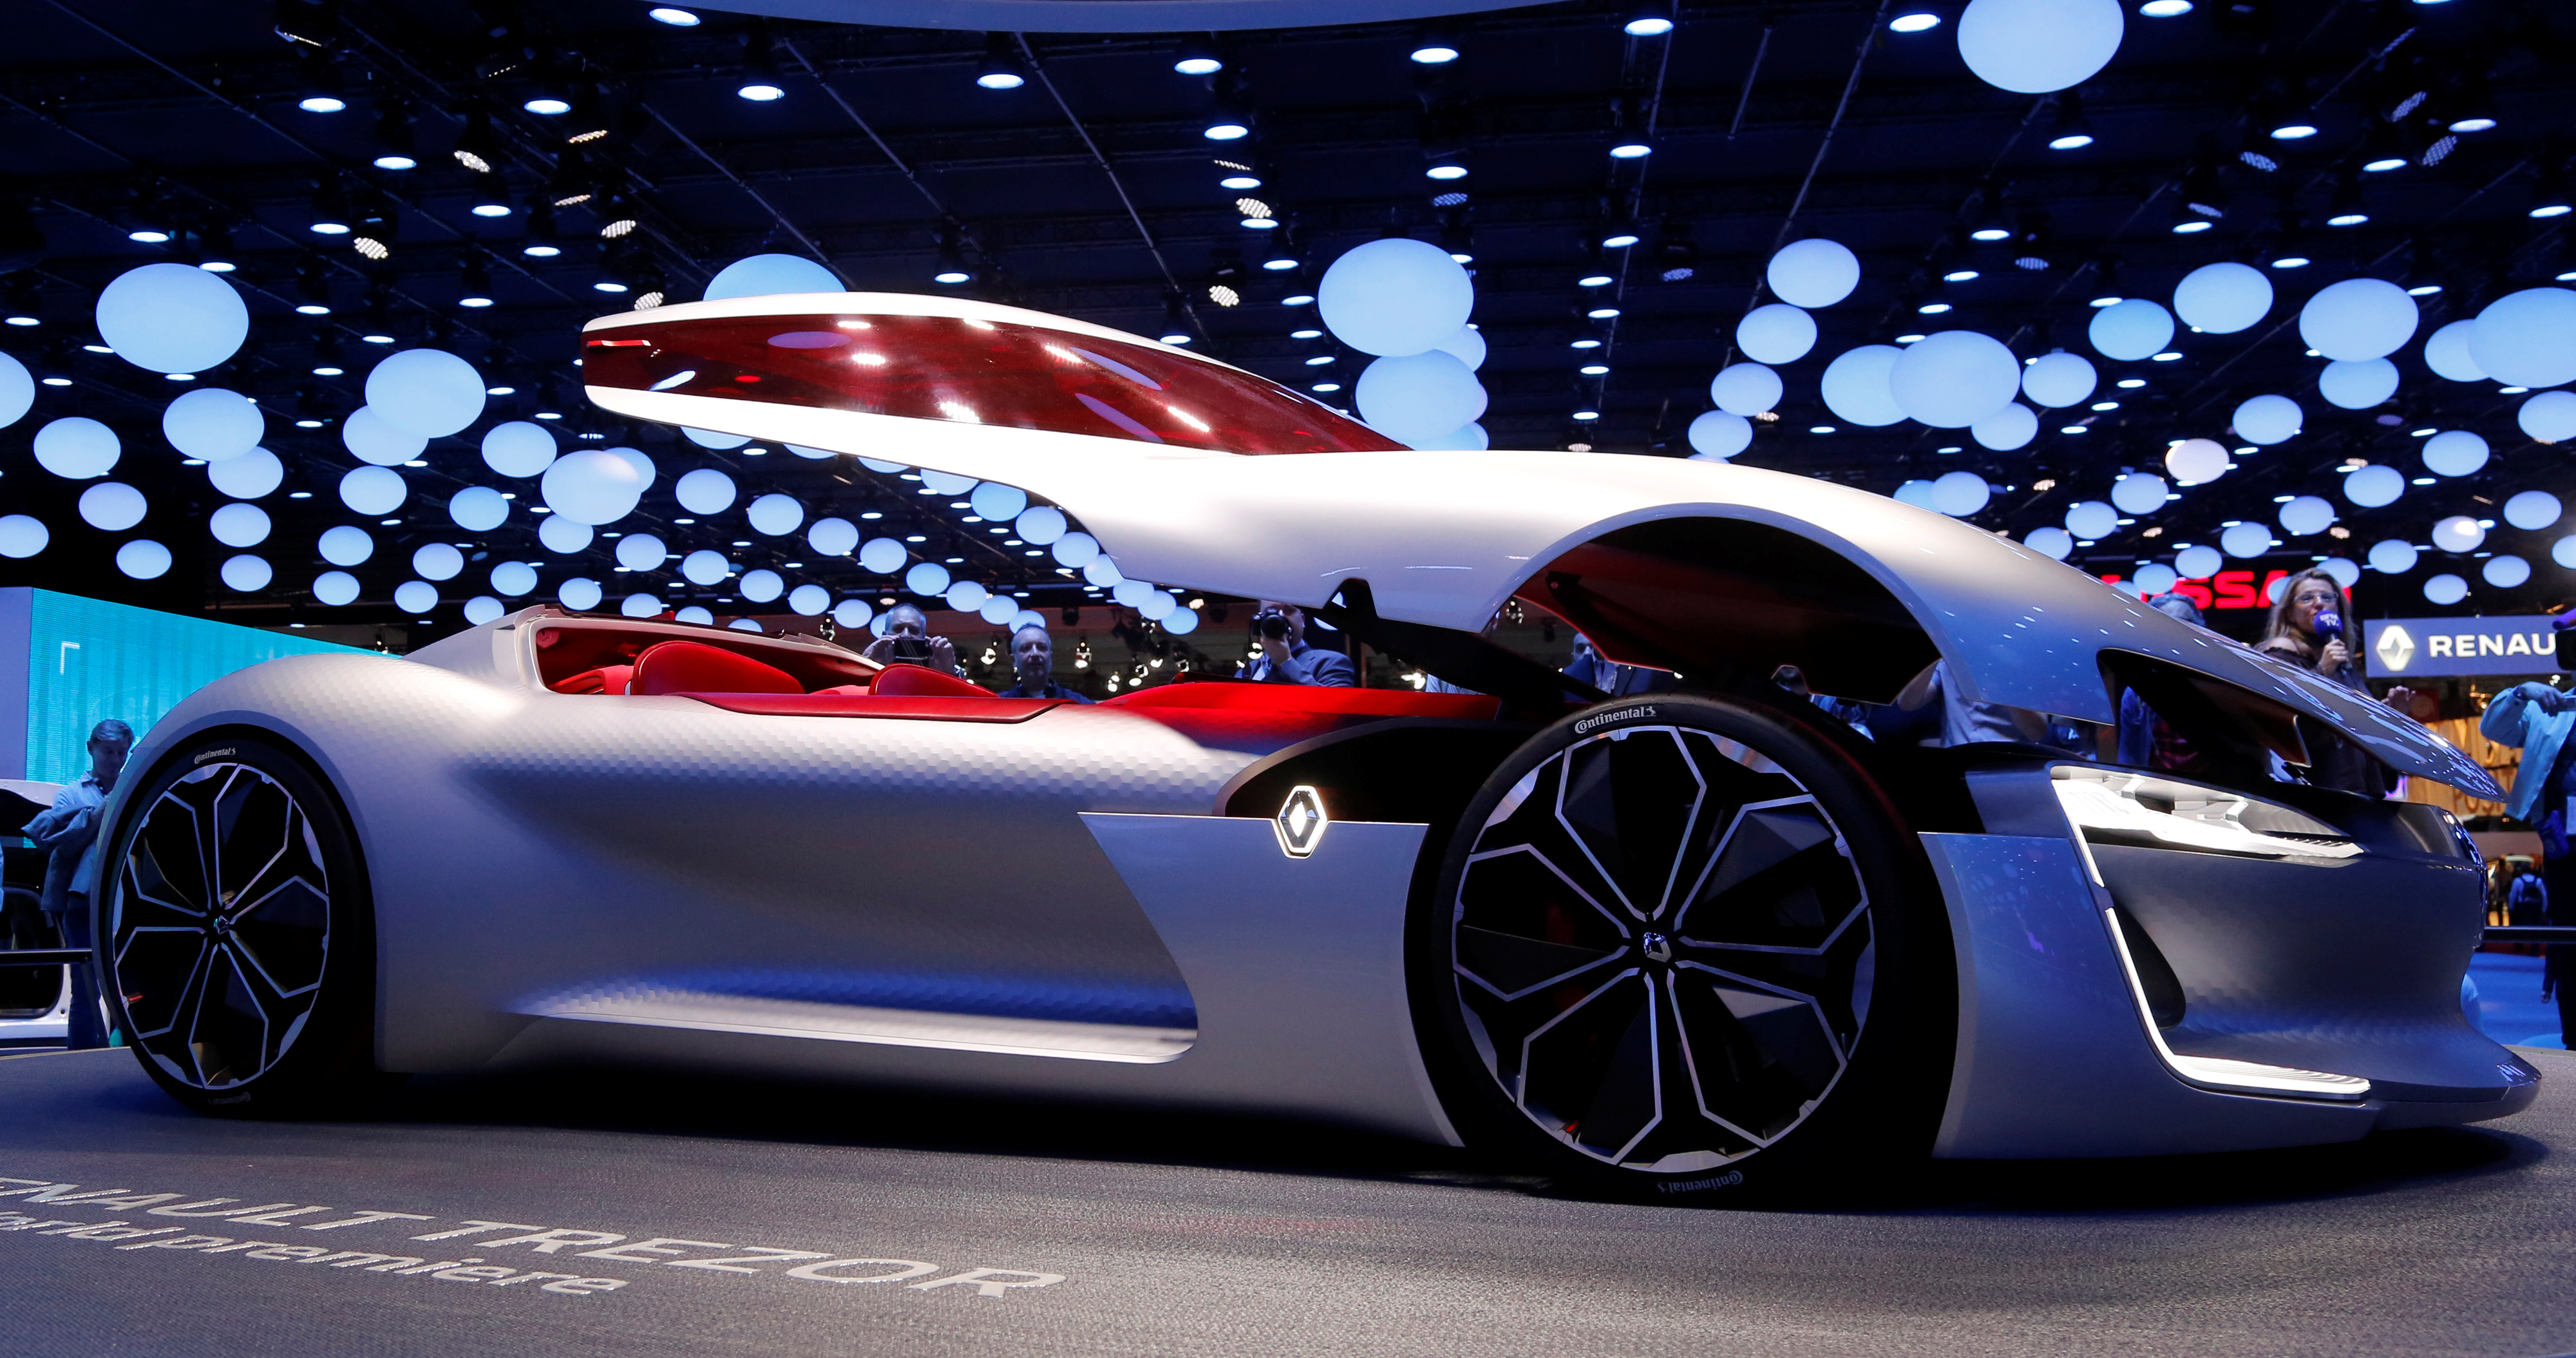 A Renault Trezor car is displayed at the Mondial de l'Automobile, Paris auto show, during media day in Paris